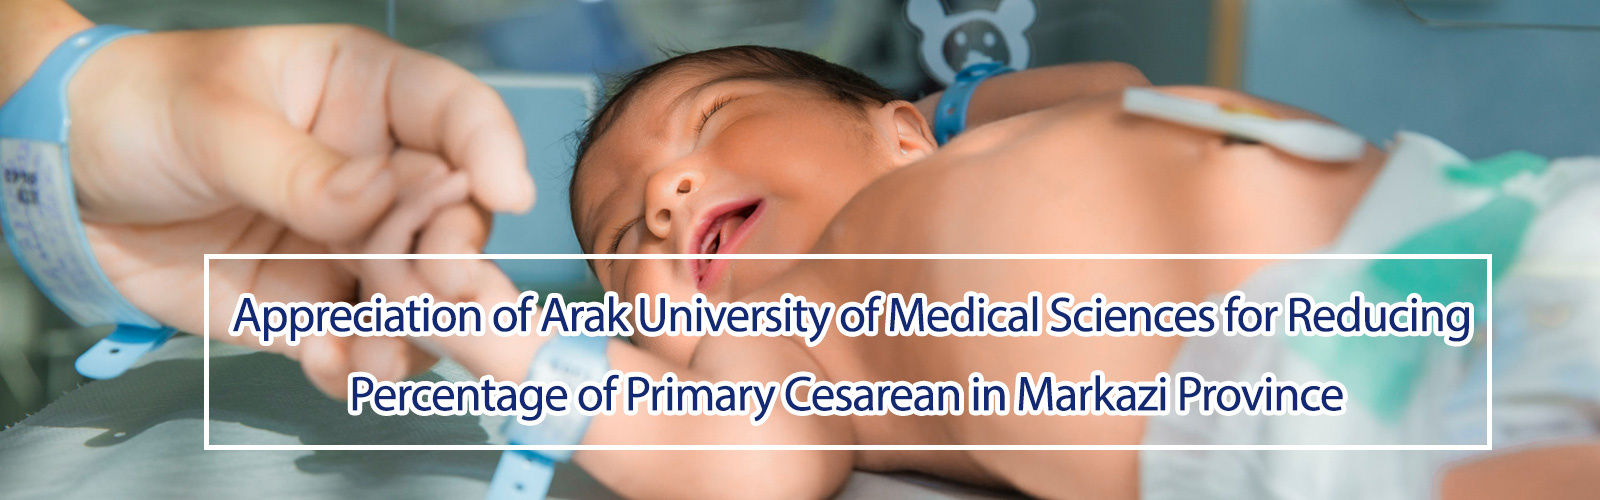 Appreciation of Arak University of Medical Sciences for reducing percentage of primary cesarean section in Markazi province